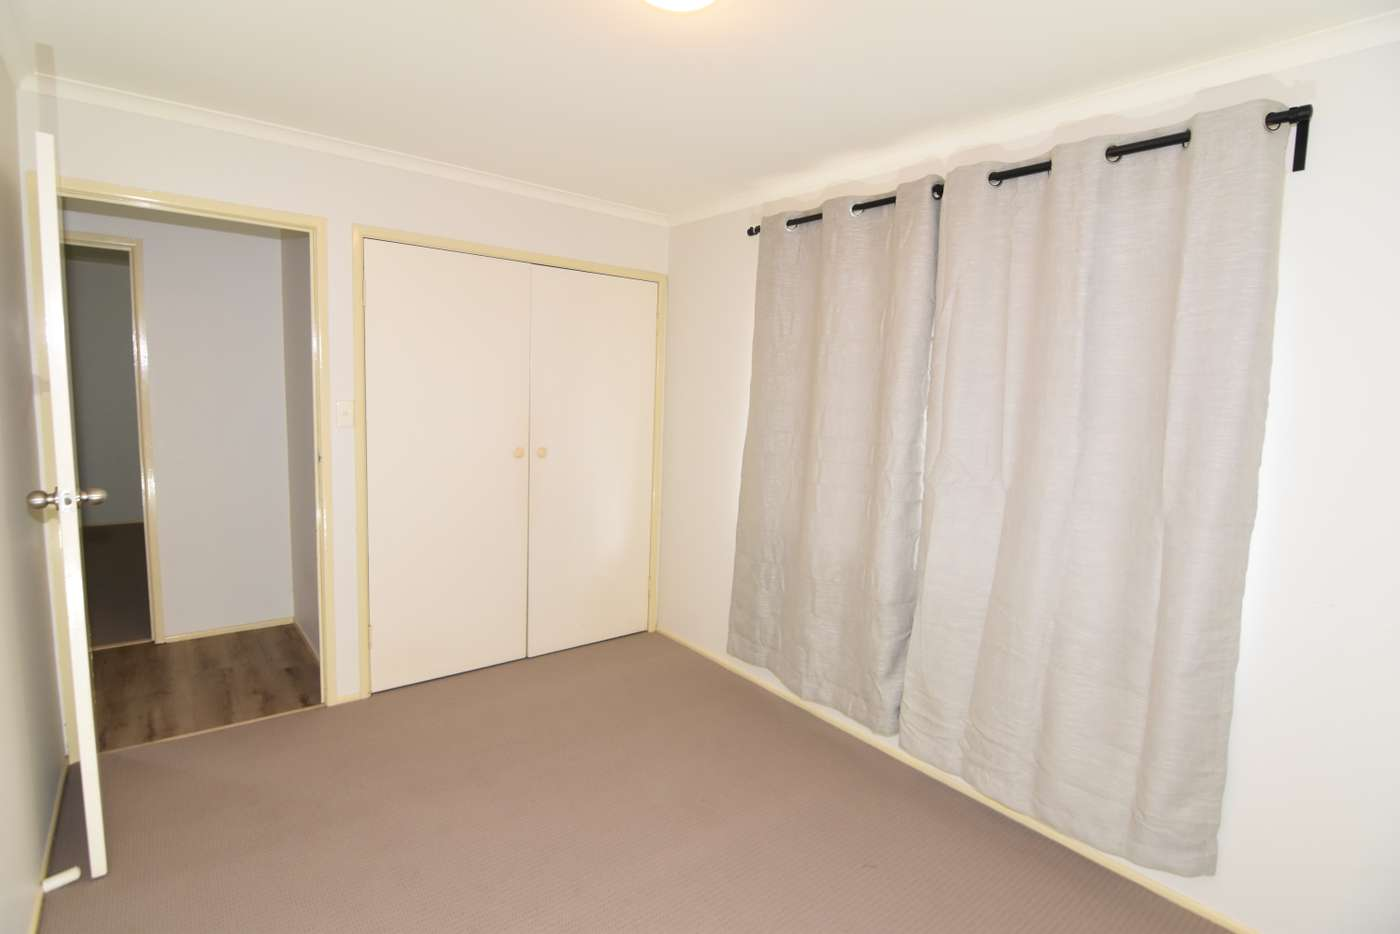 Sixth view of Homely house listing, 1/15 LANCEWOOD STREET, Algester QLD 4115